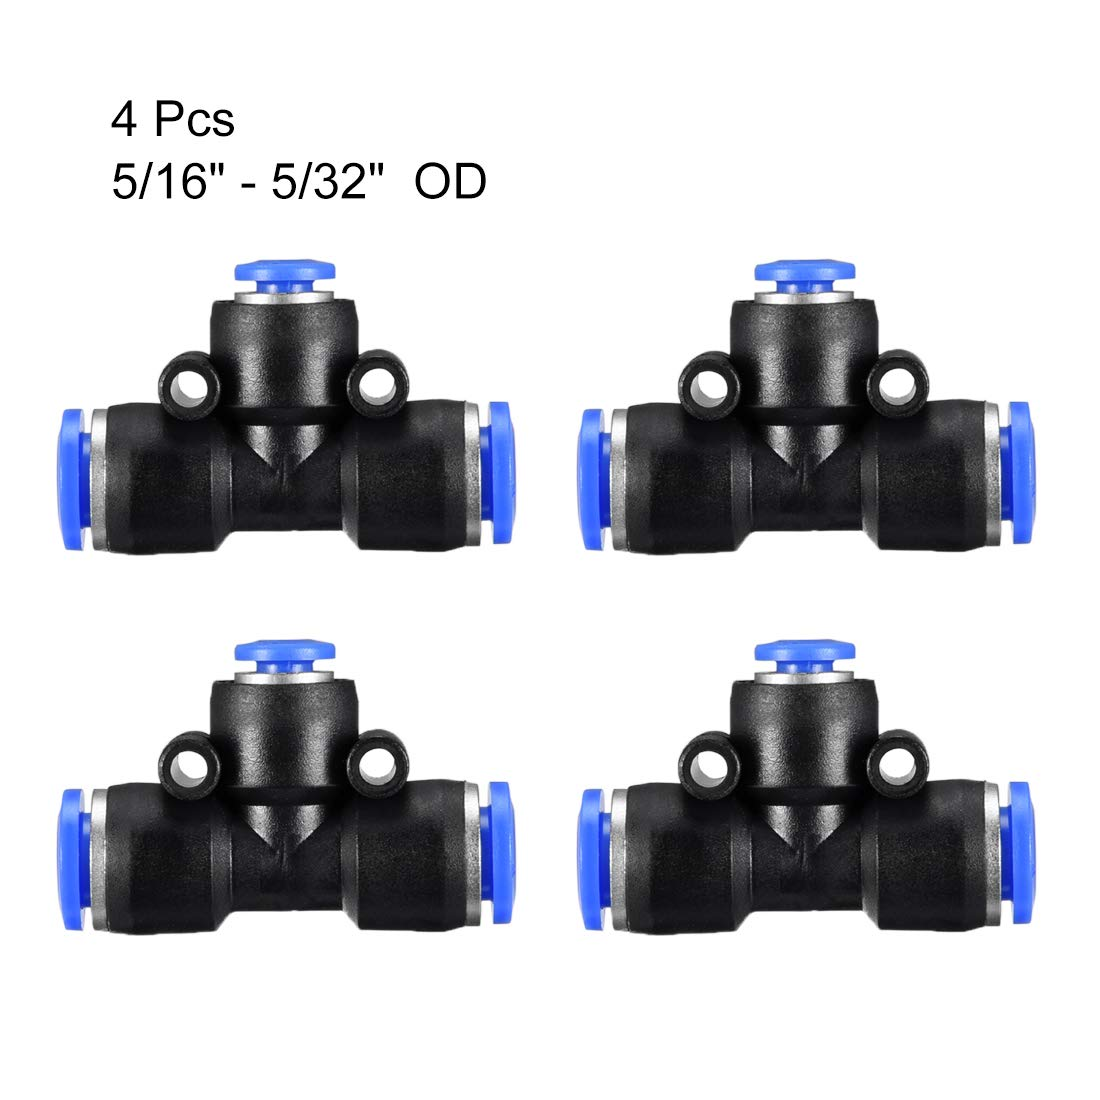 uxcell Plastic Tee Push to Connect Tube Fittings 25//64-15//64 od Push Lock Blue 4pcs 10-6mm